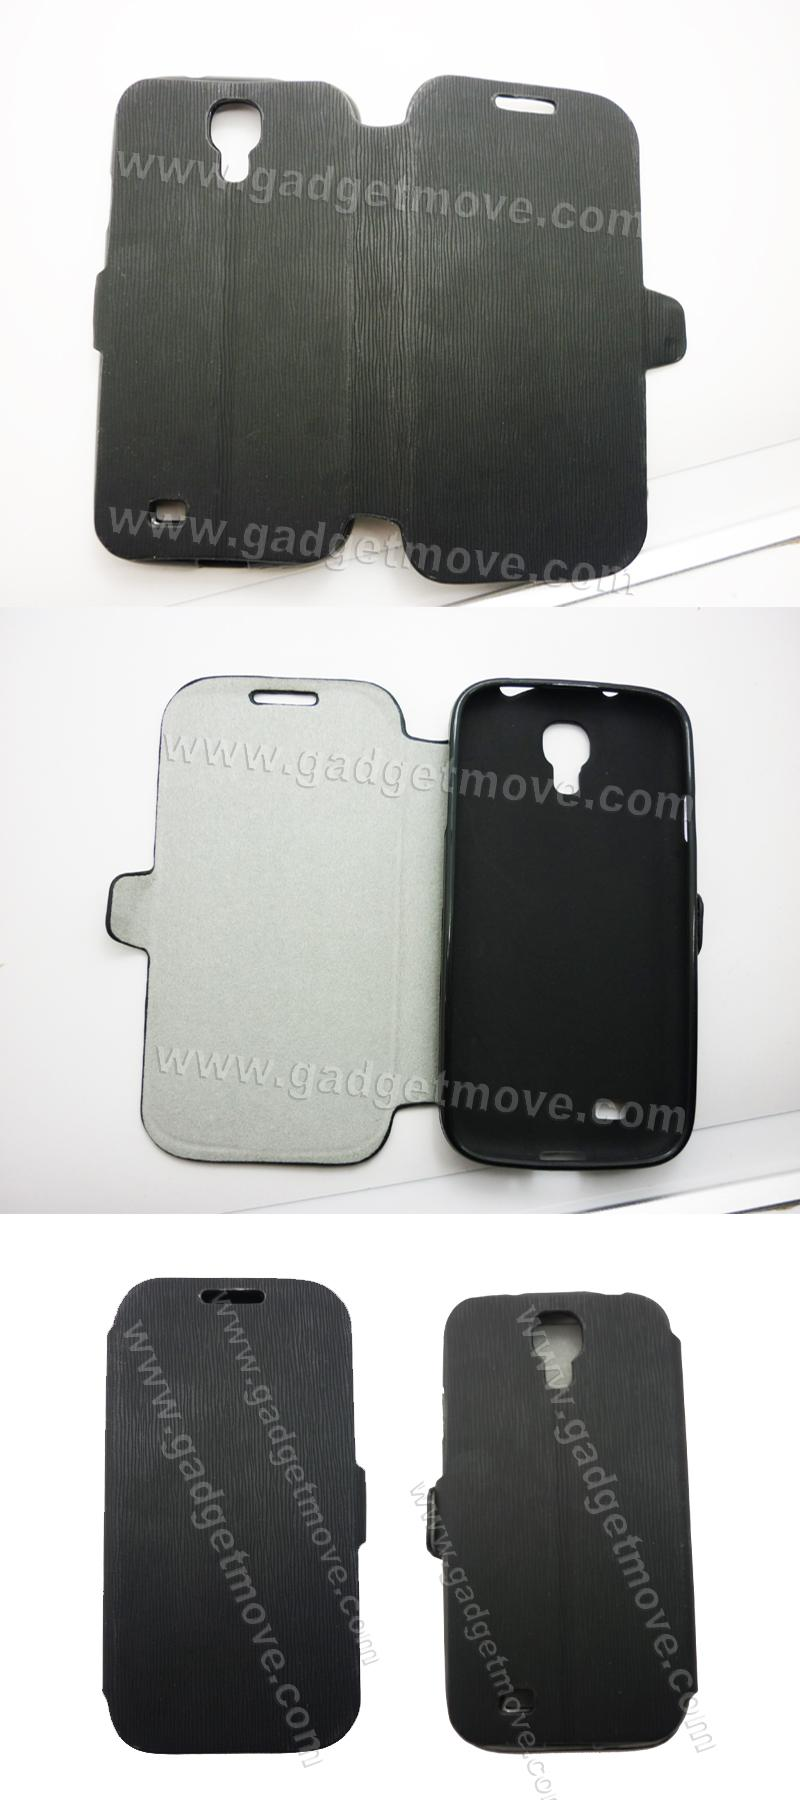 Samsung Galaxy S4 I9500 Magnetic Fl End 12 1 2018 1200 Am New All Black Flip Cover Leather Case Protective